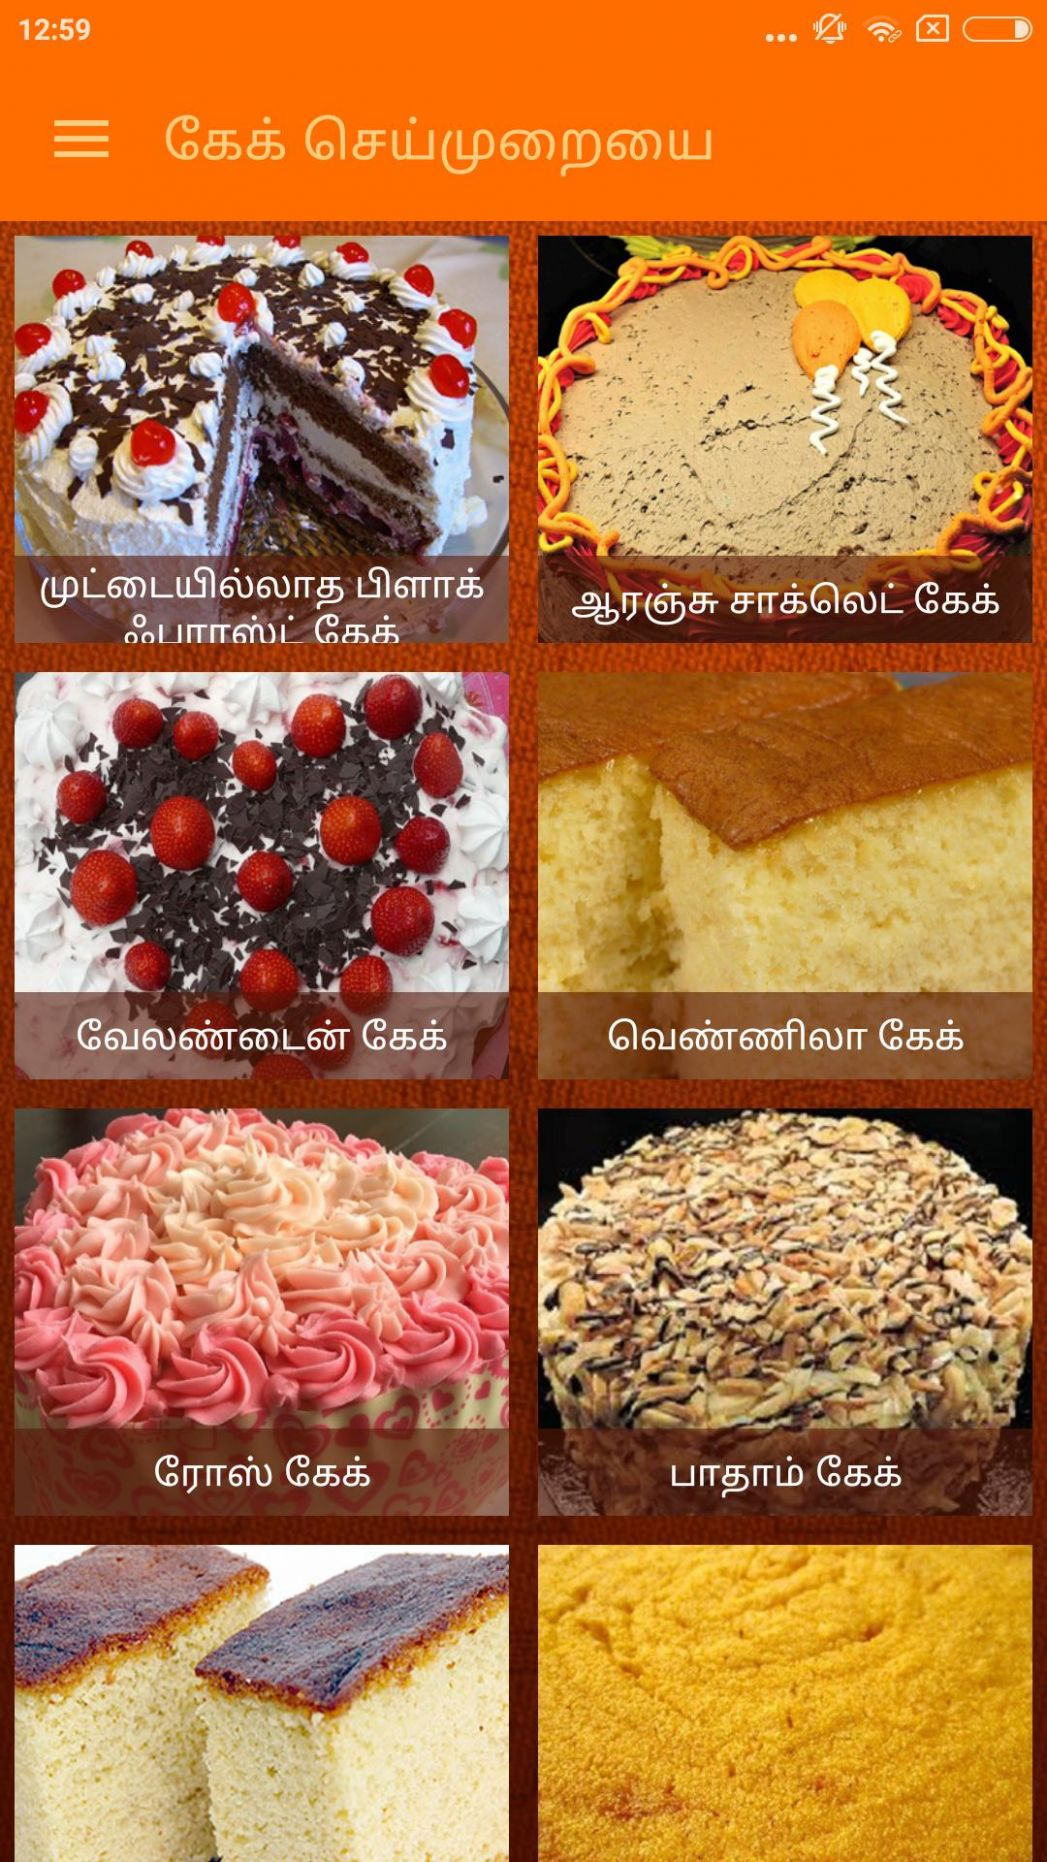 Tamil Cake Recipes for Android - APK Download